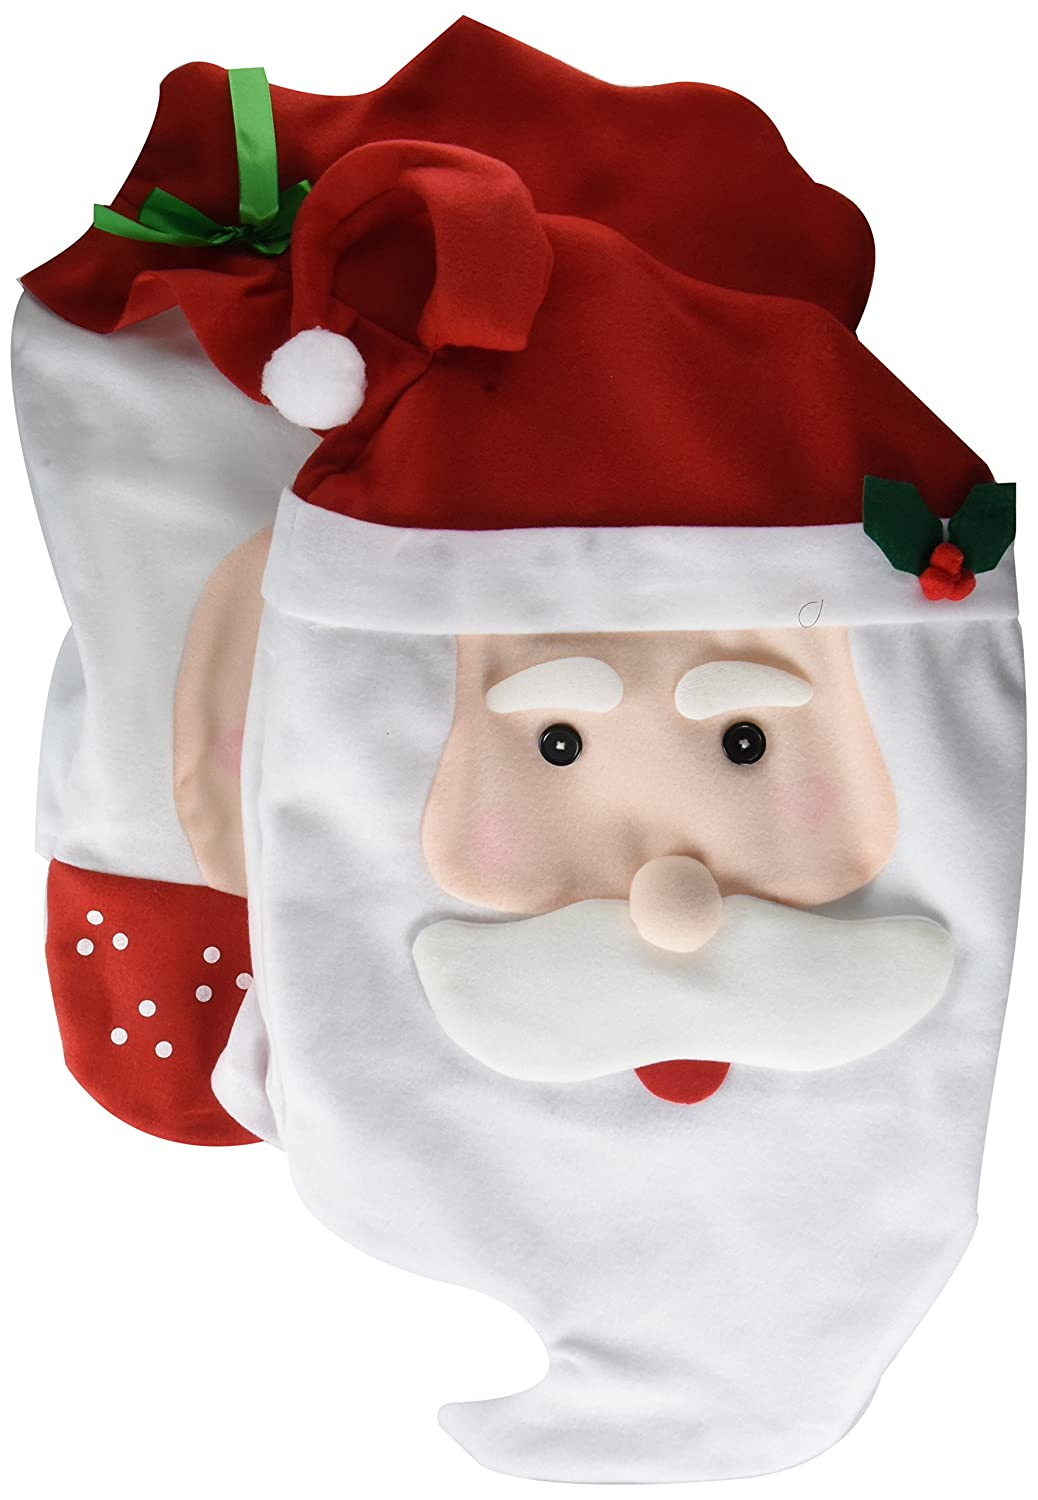 GIM Christmas Decor Kitchen Chair Slip Covers Red Adorable Featuring Mr & Mrs Santa Claus for Holiday Party Festival Halloween Kitchen Dining Room Chairs (Set of 2)